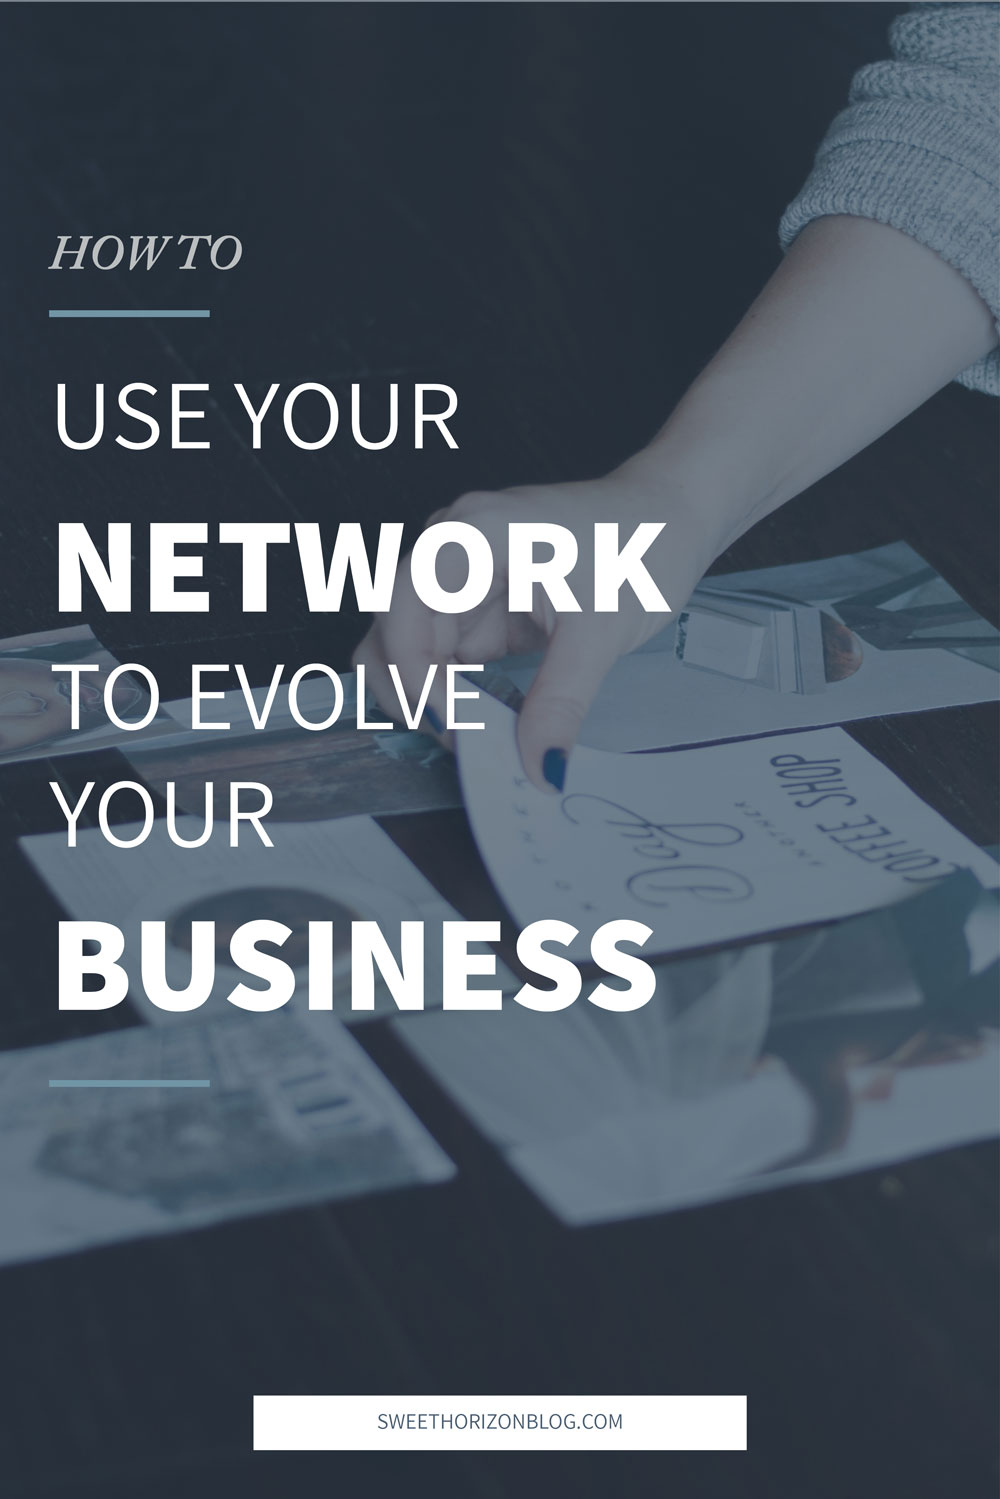 How to Use Your Network to Evolve Your Business from www.sweethorizonblog.com